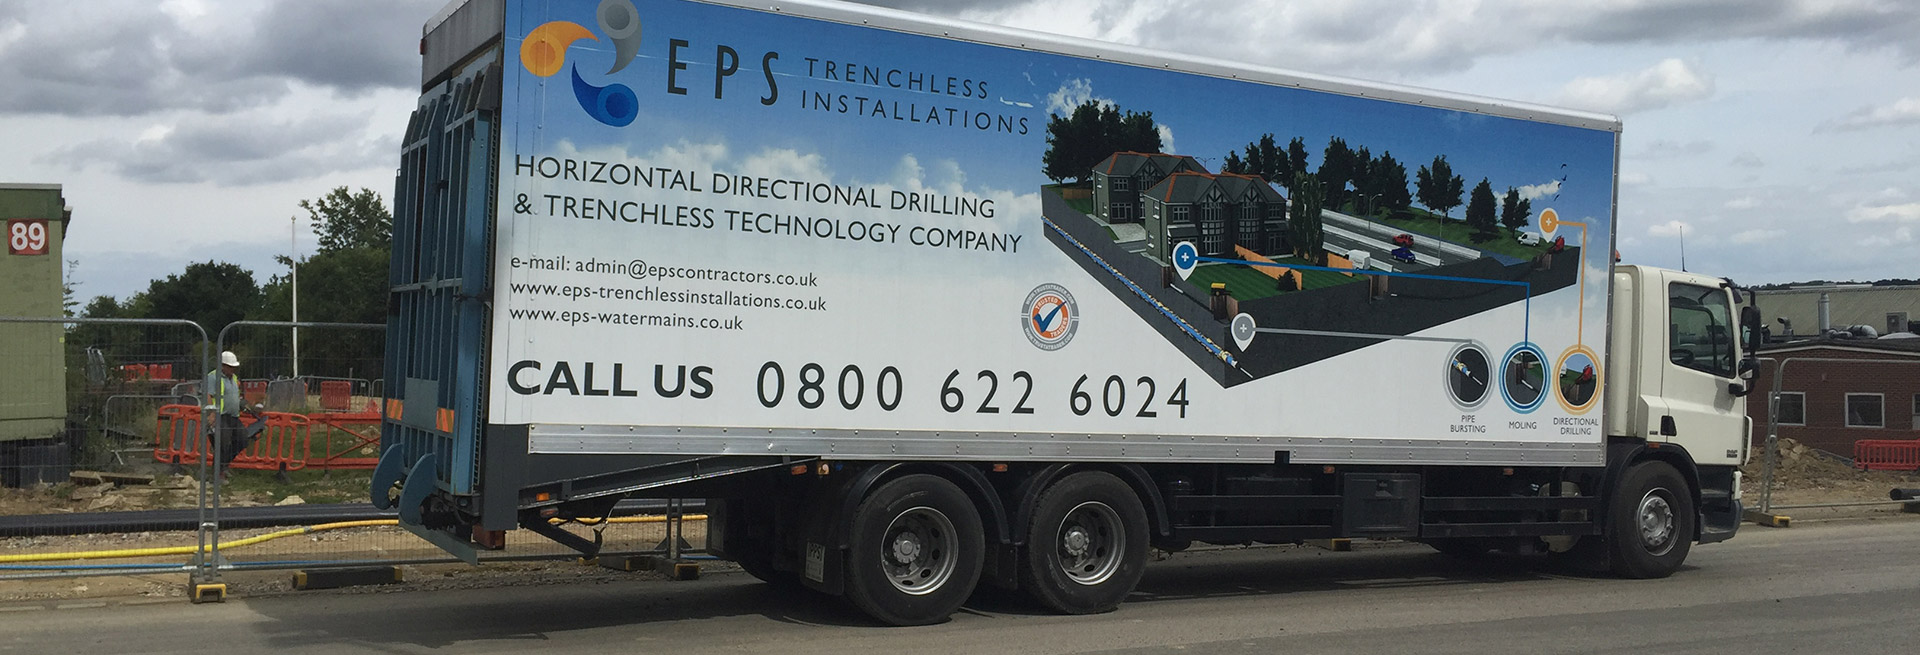 Directional Drilling | EPS Trenchless Installations